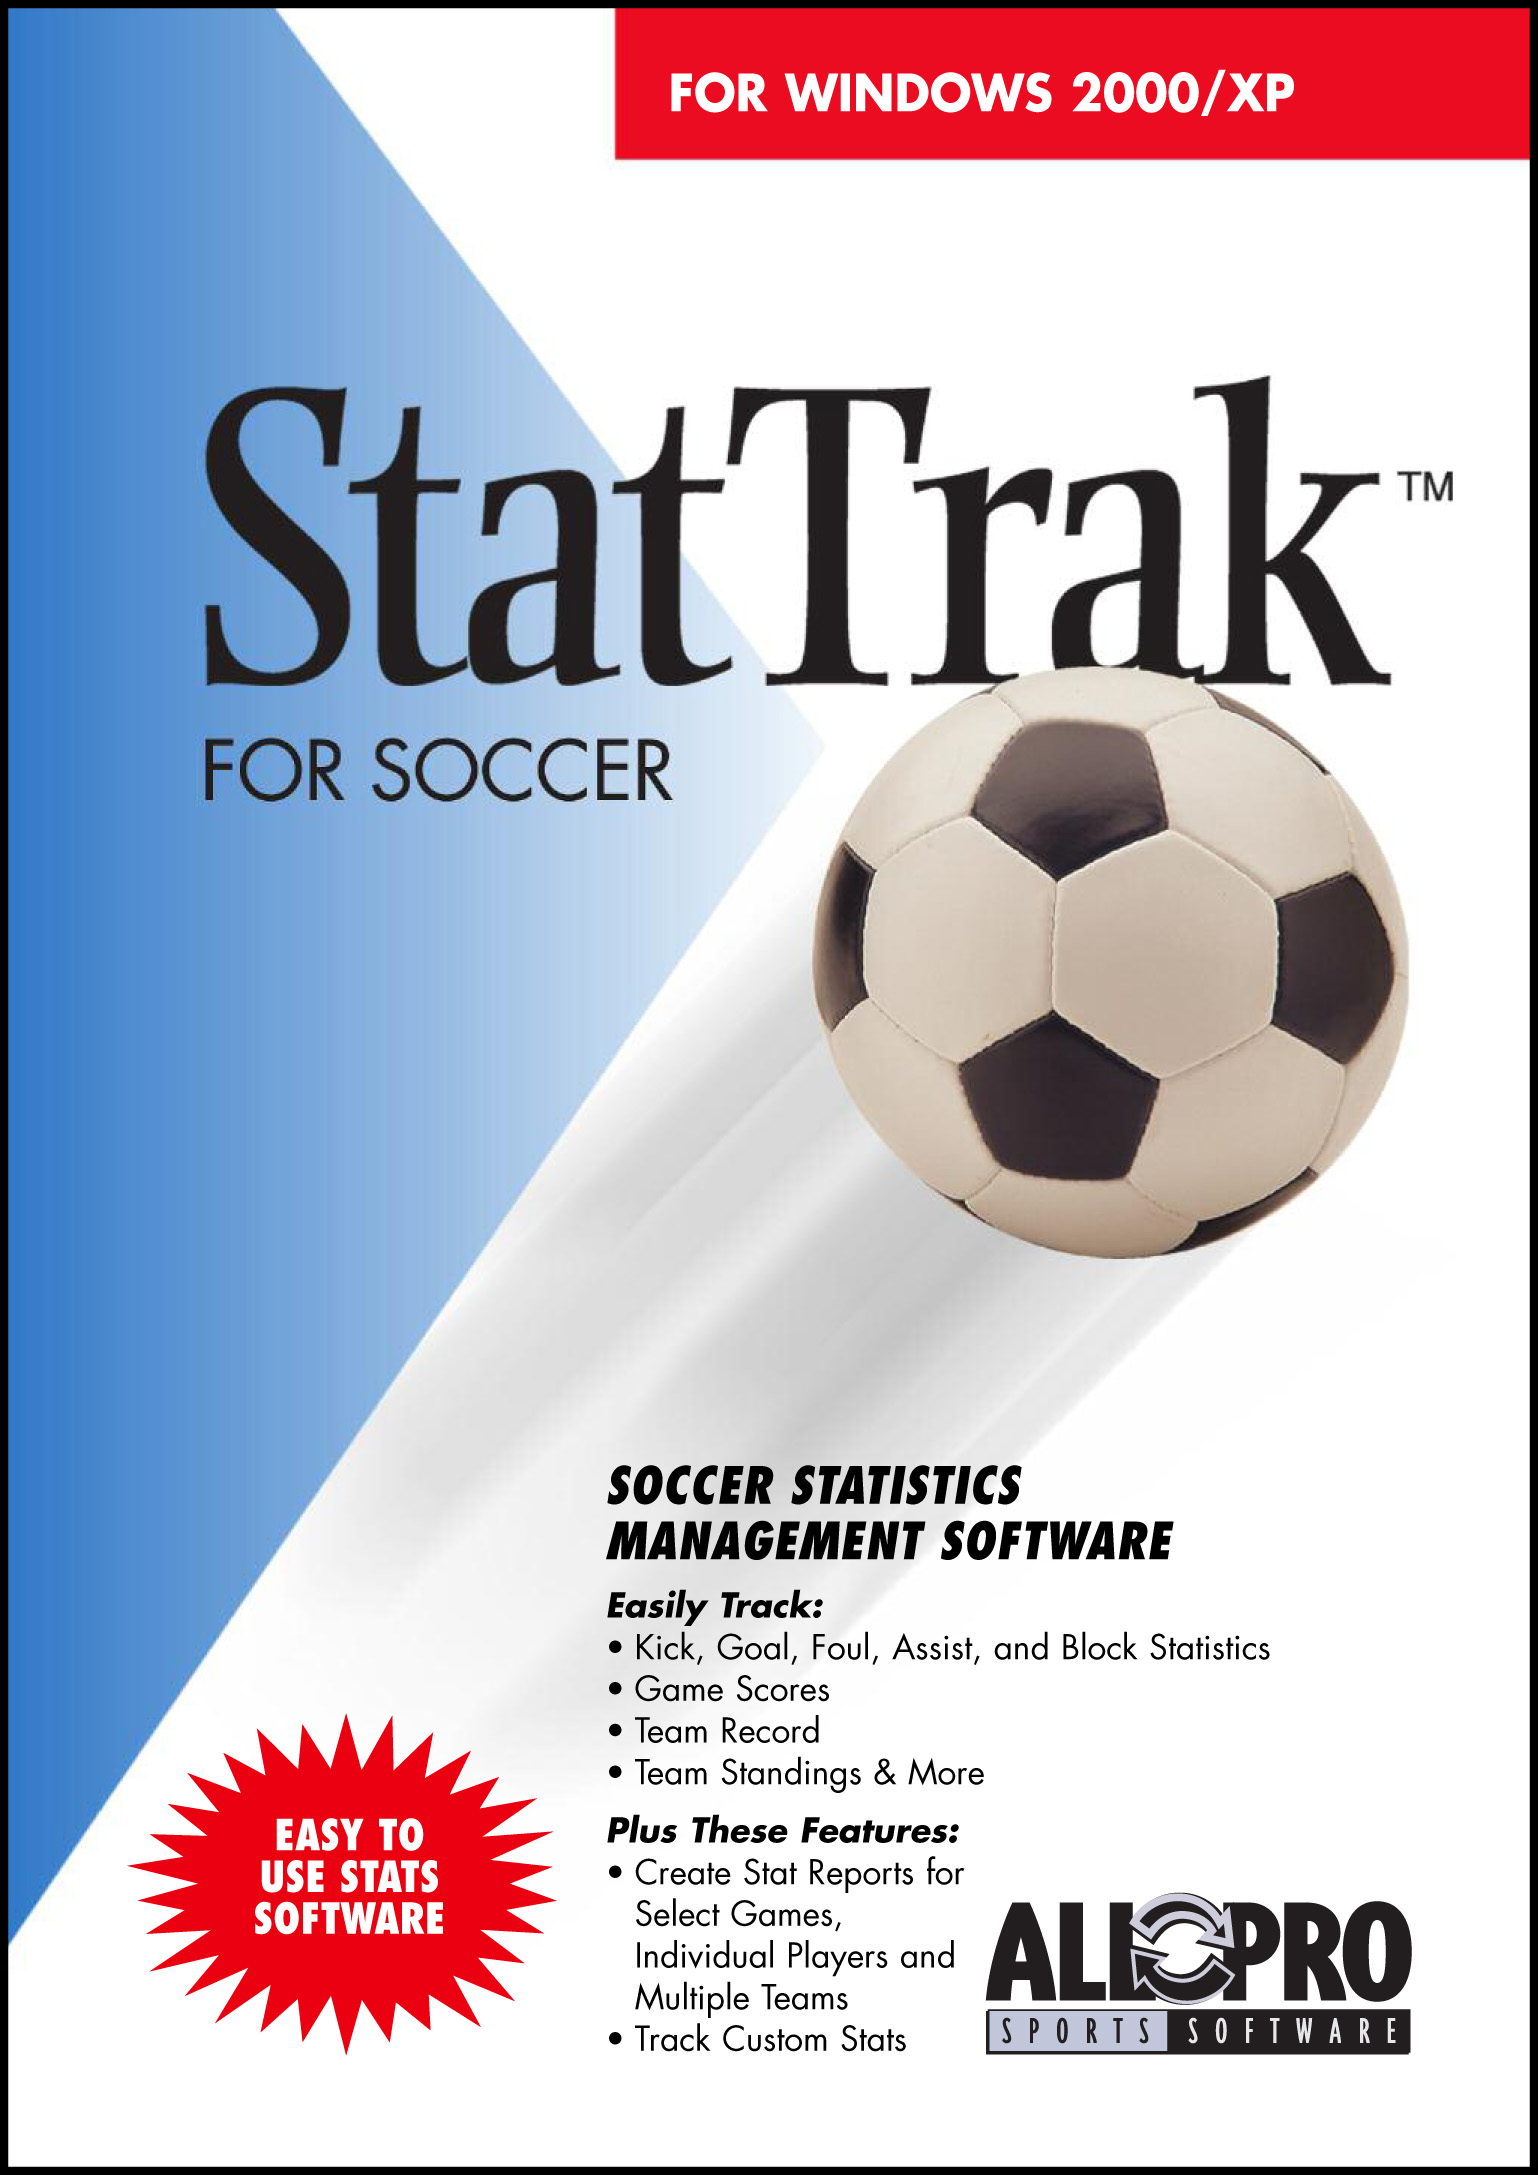 StatTrak for Soccer